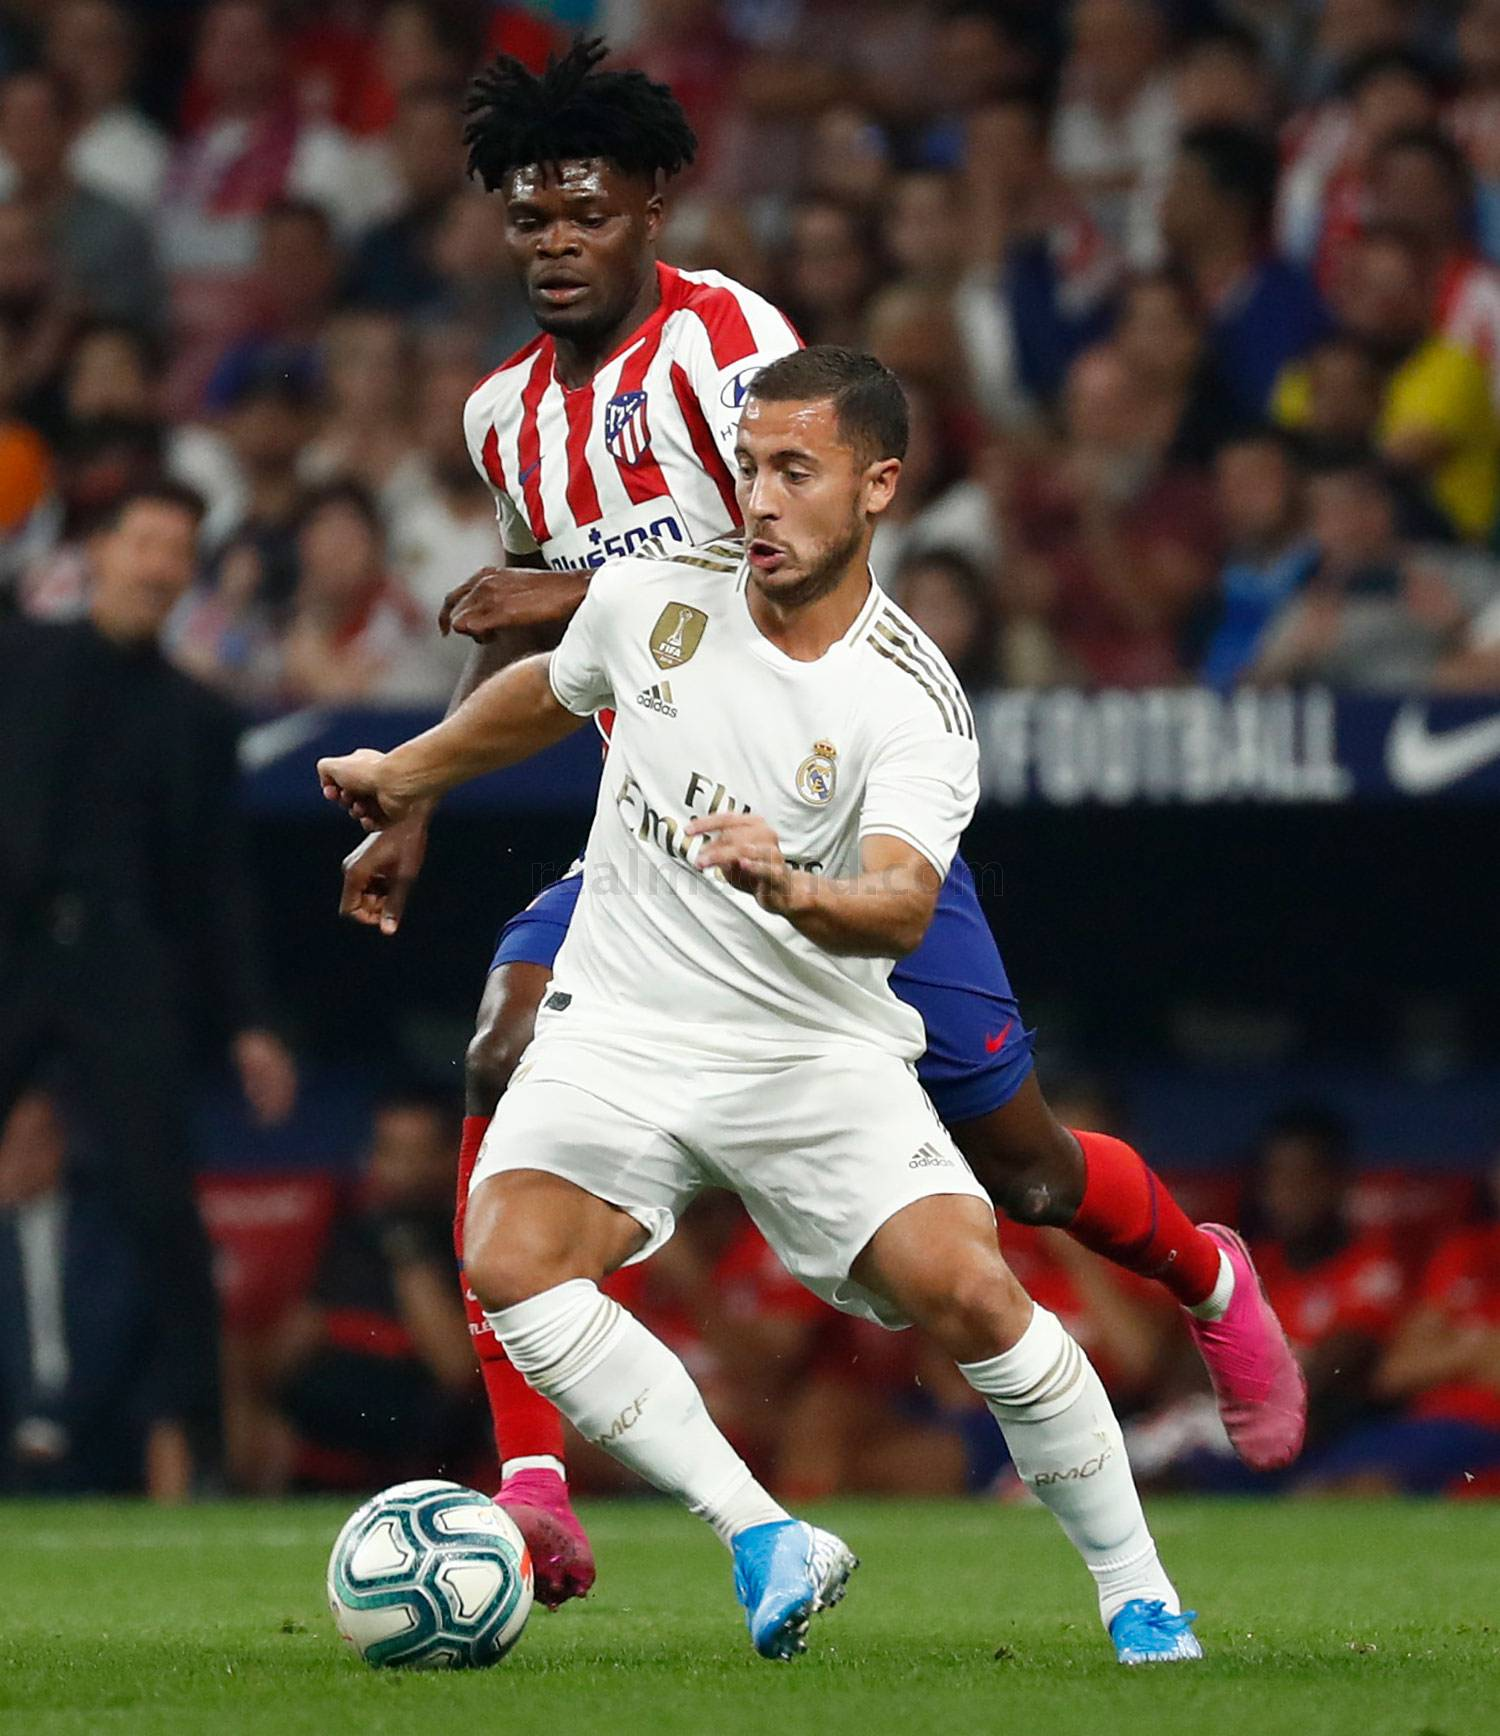 Real Madrid - Atlético de Madrid - Real Madrid - 28-09-2019